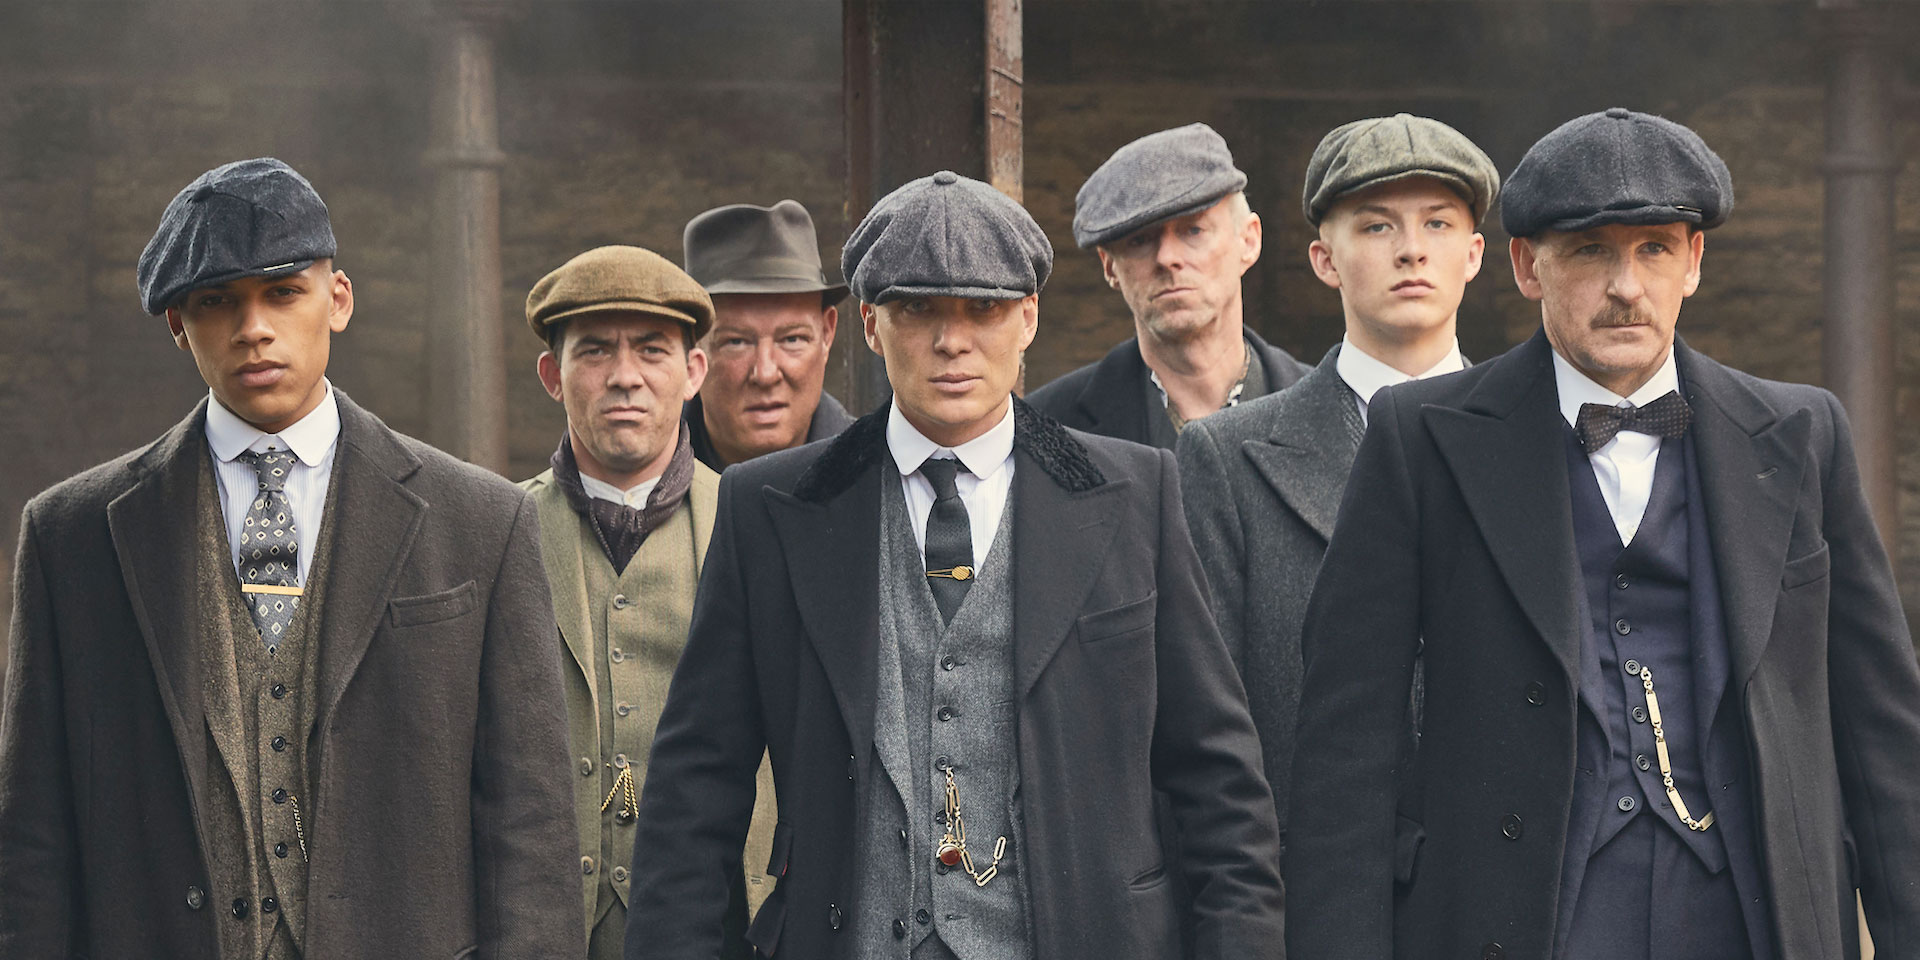 Peaky Blinders Series 5 Cast